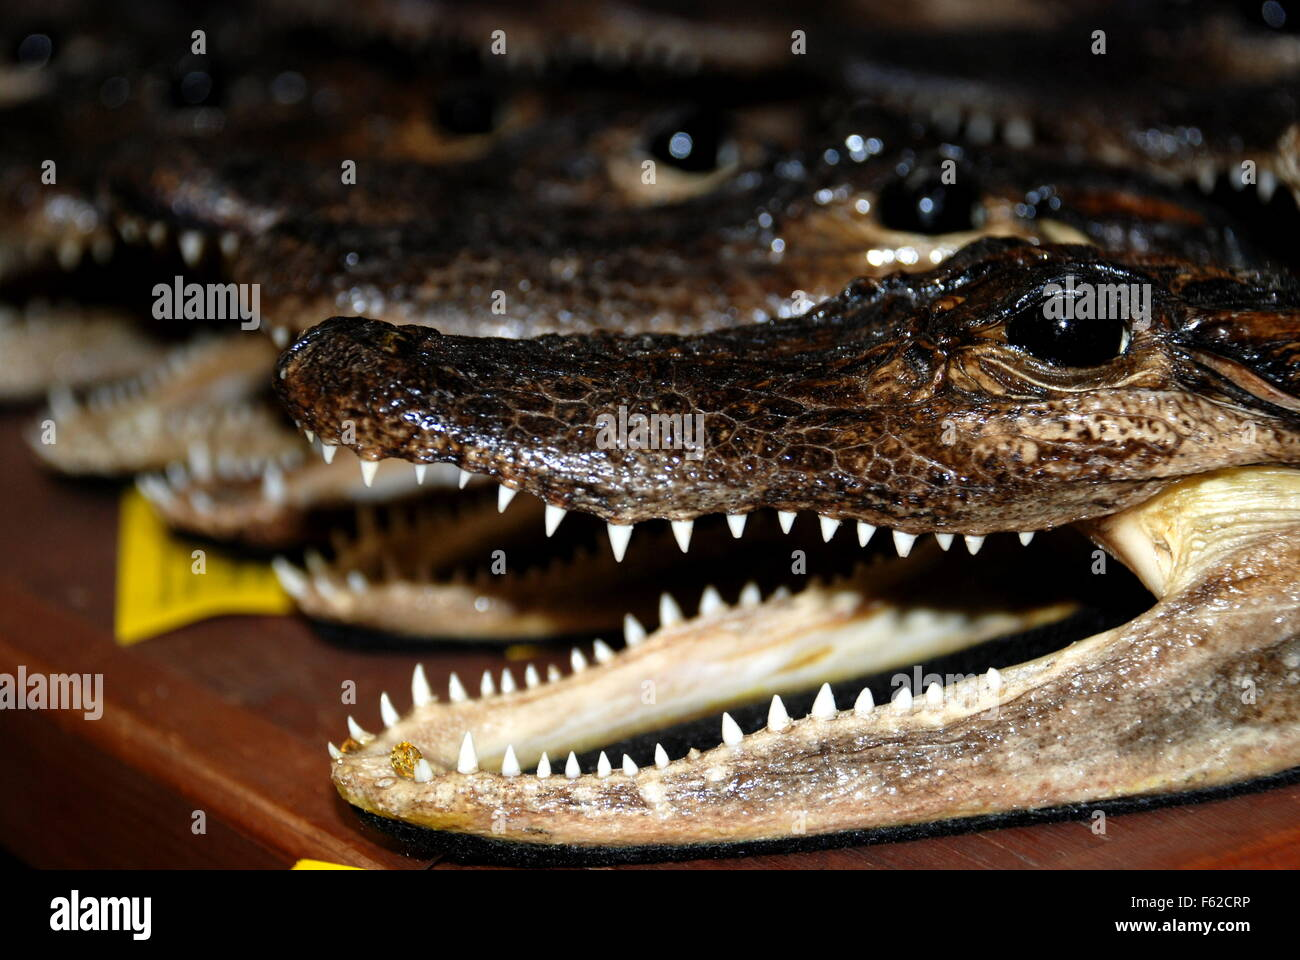 Bouche Alligator Photo Stock